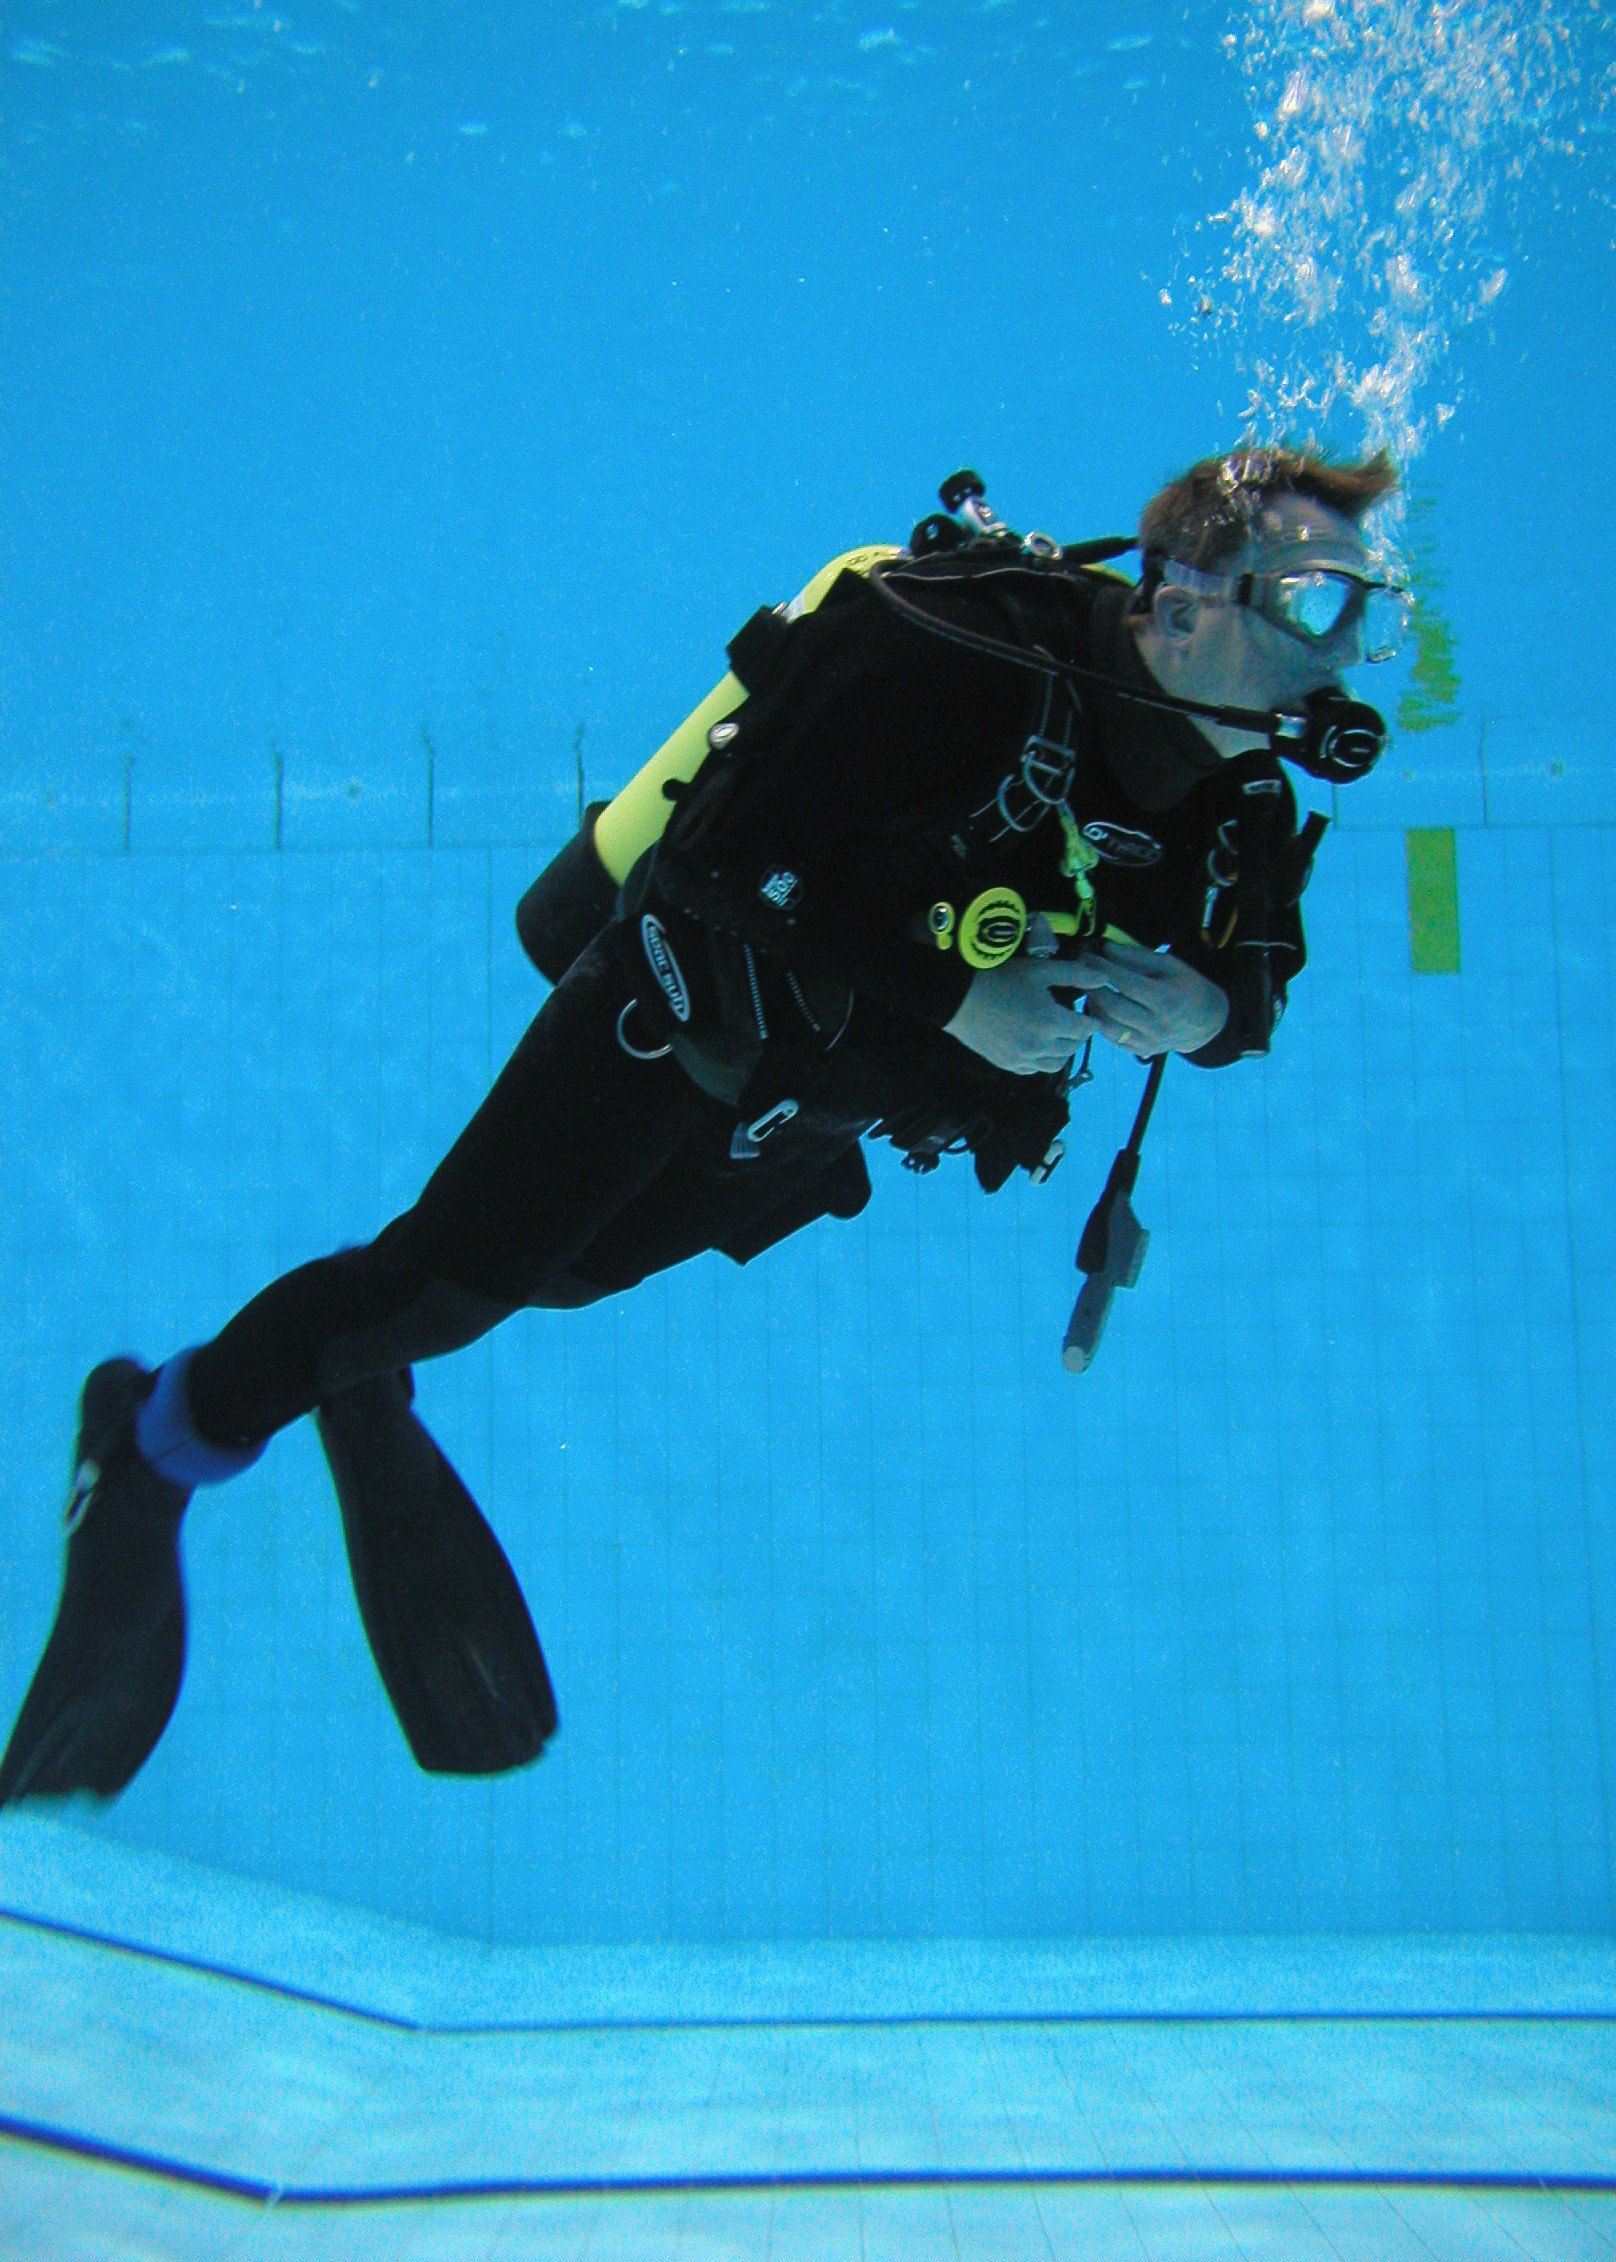 Peter trying out his Dry-Suit in the pool